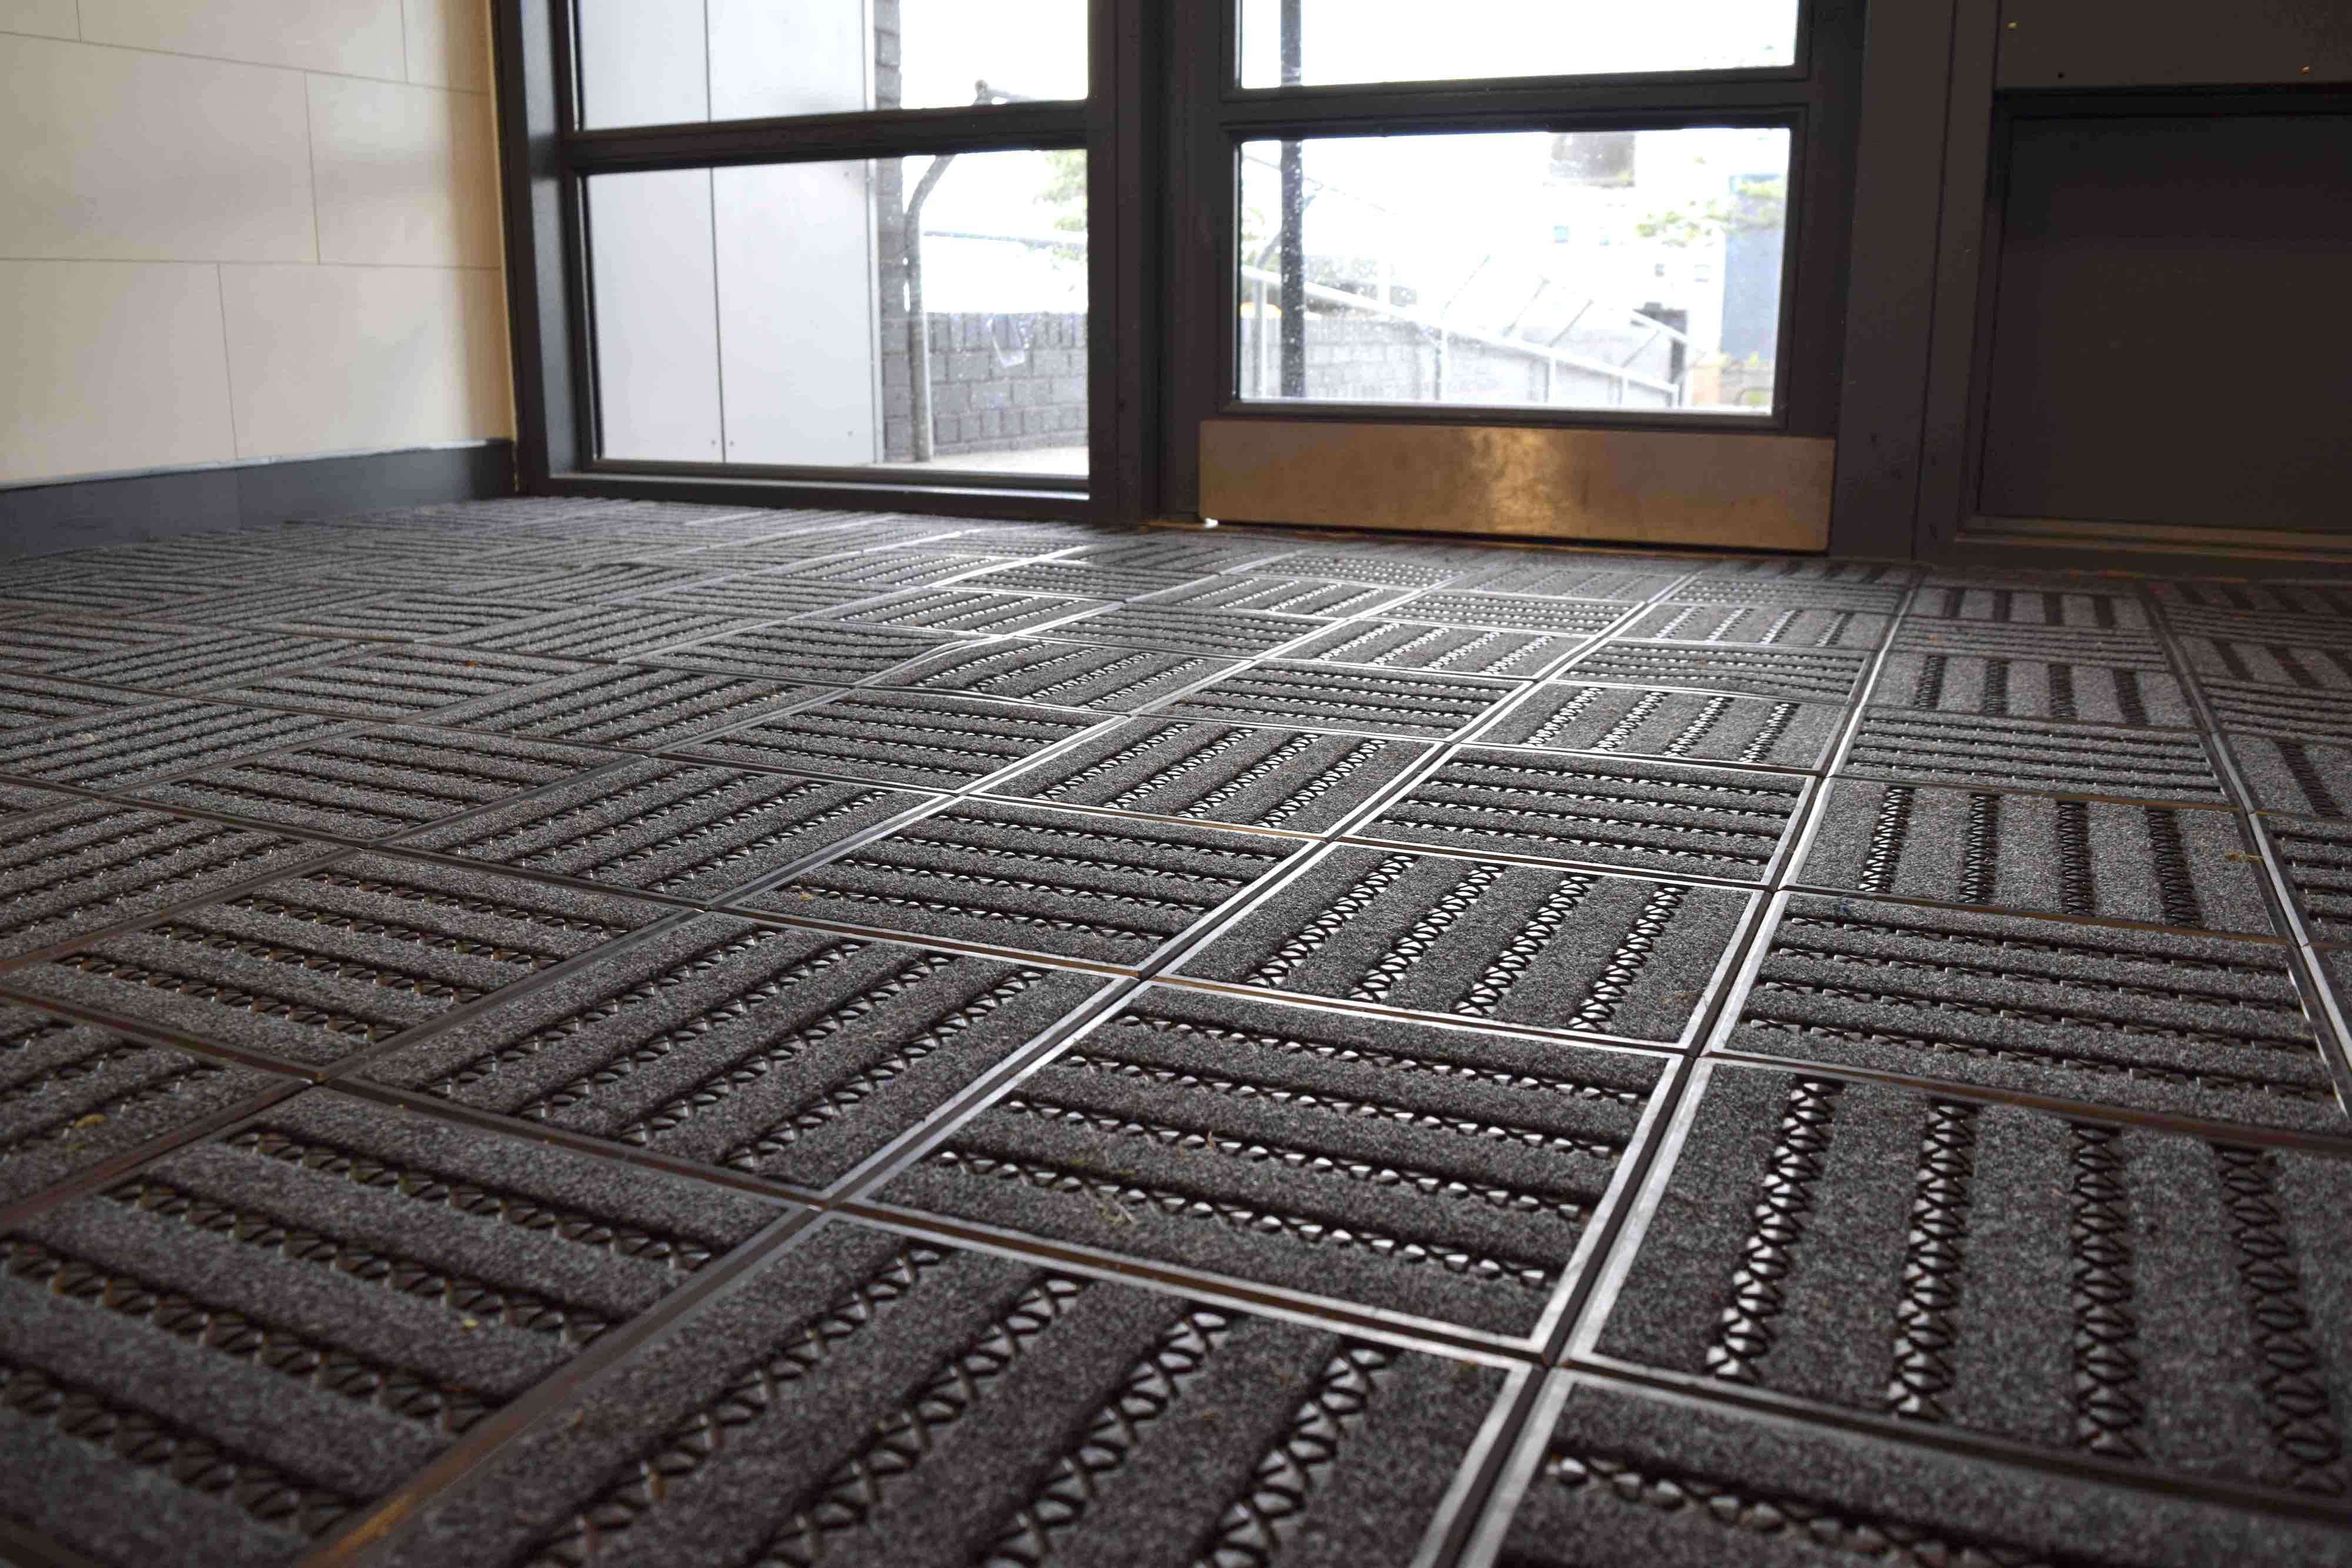 Mat.Works | Entrance Solutions | Treadloc 25 Entrance Matting | Page Image 1